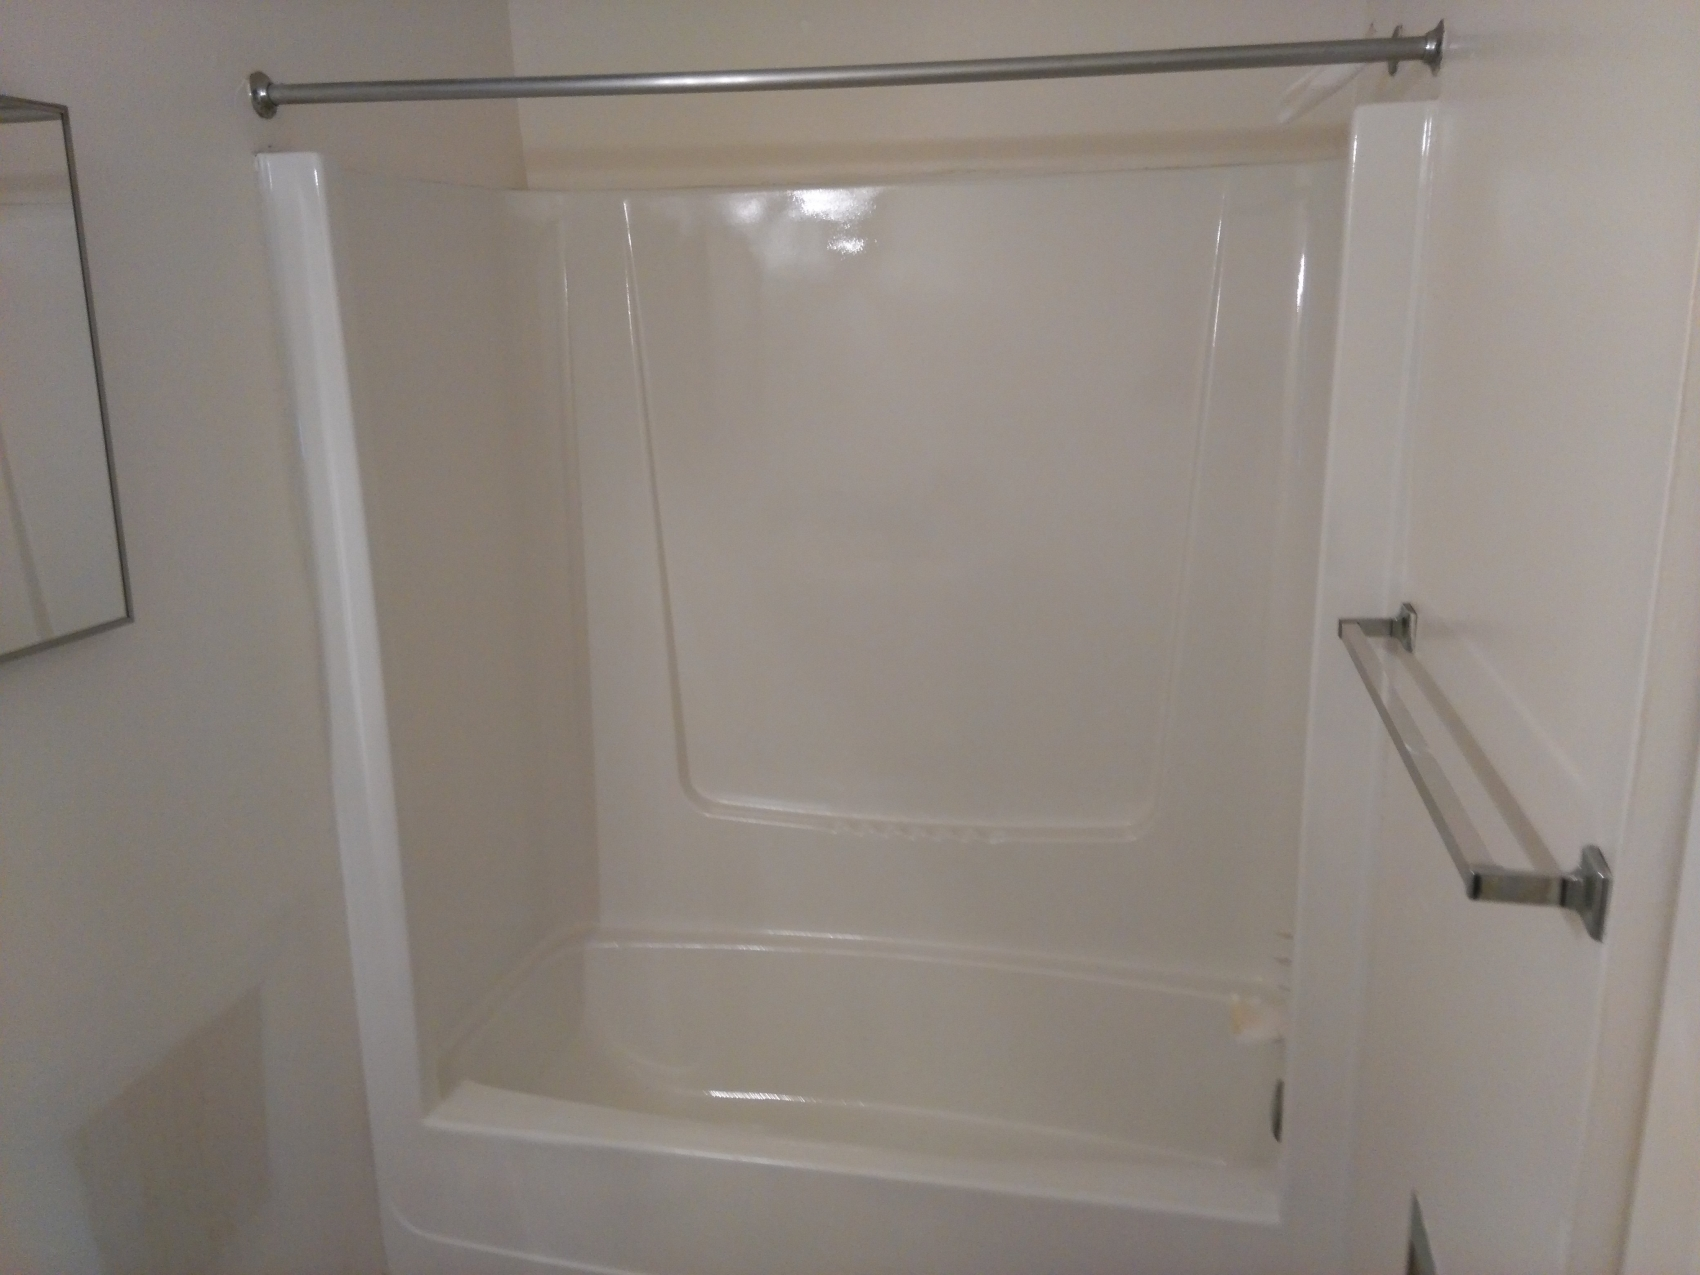 J&J Bathtub Refinishing: Home